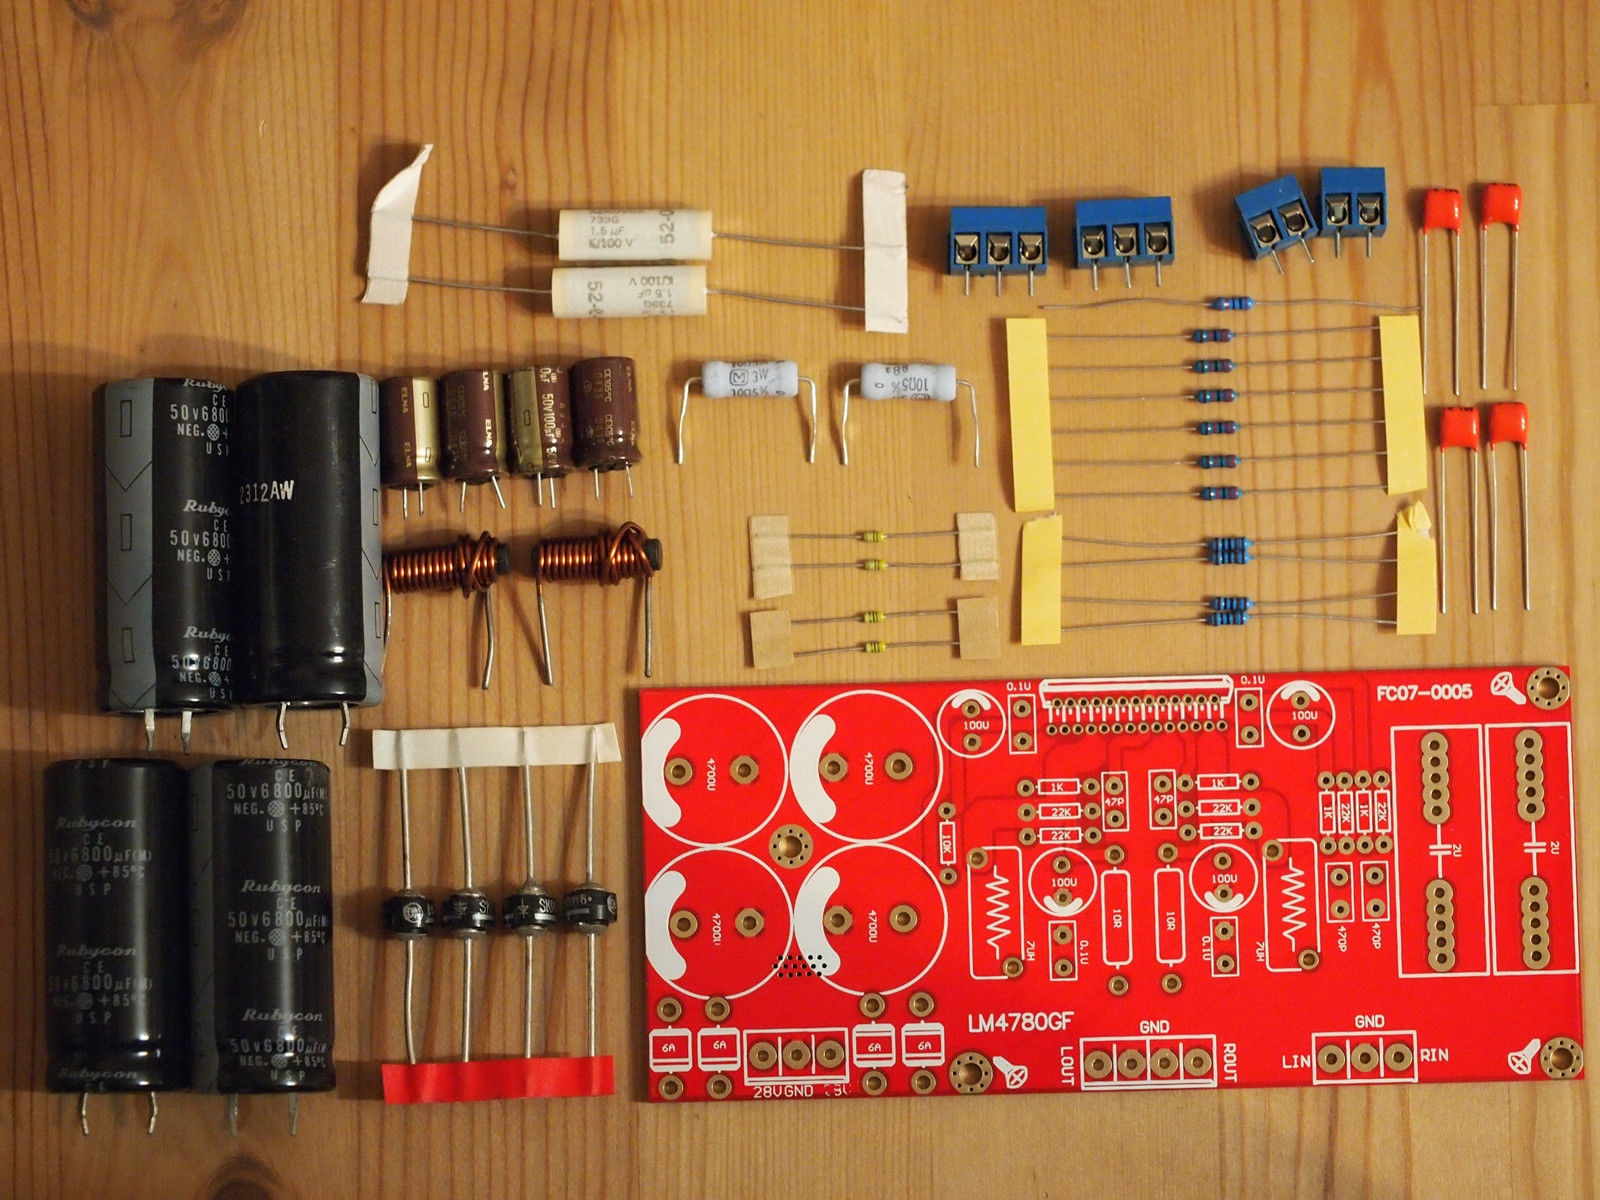 Lm4780 Stereo Parallel Power Amplifier And 50 Similar Items Alephx 100w Construction Notes Partial Kit